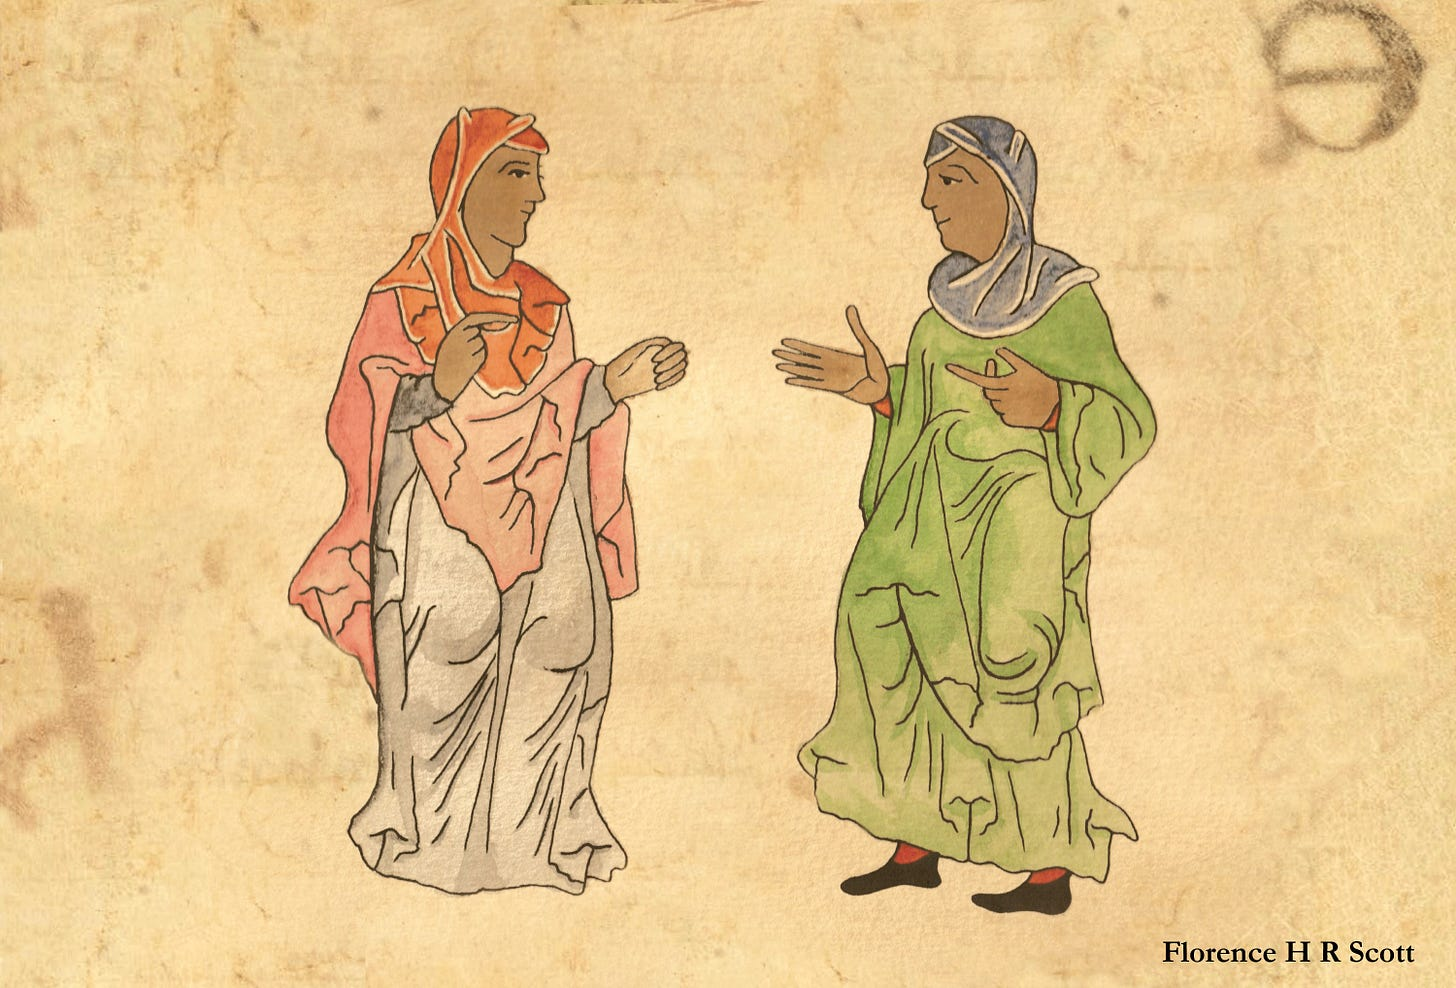 Two Black women illustrated in the style of a tenth-century English manuscript. They are both veiled and facing each other